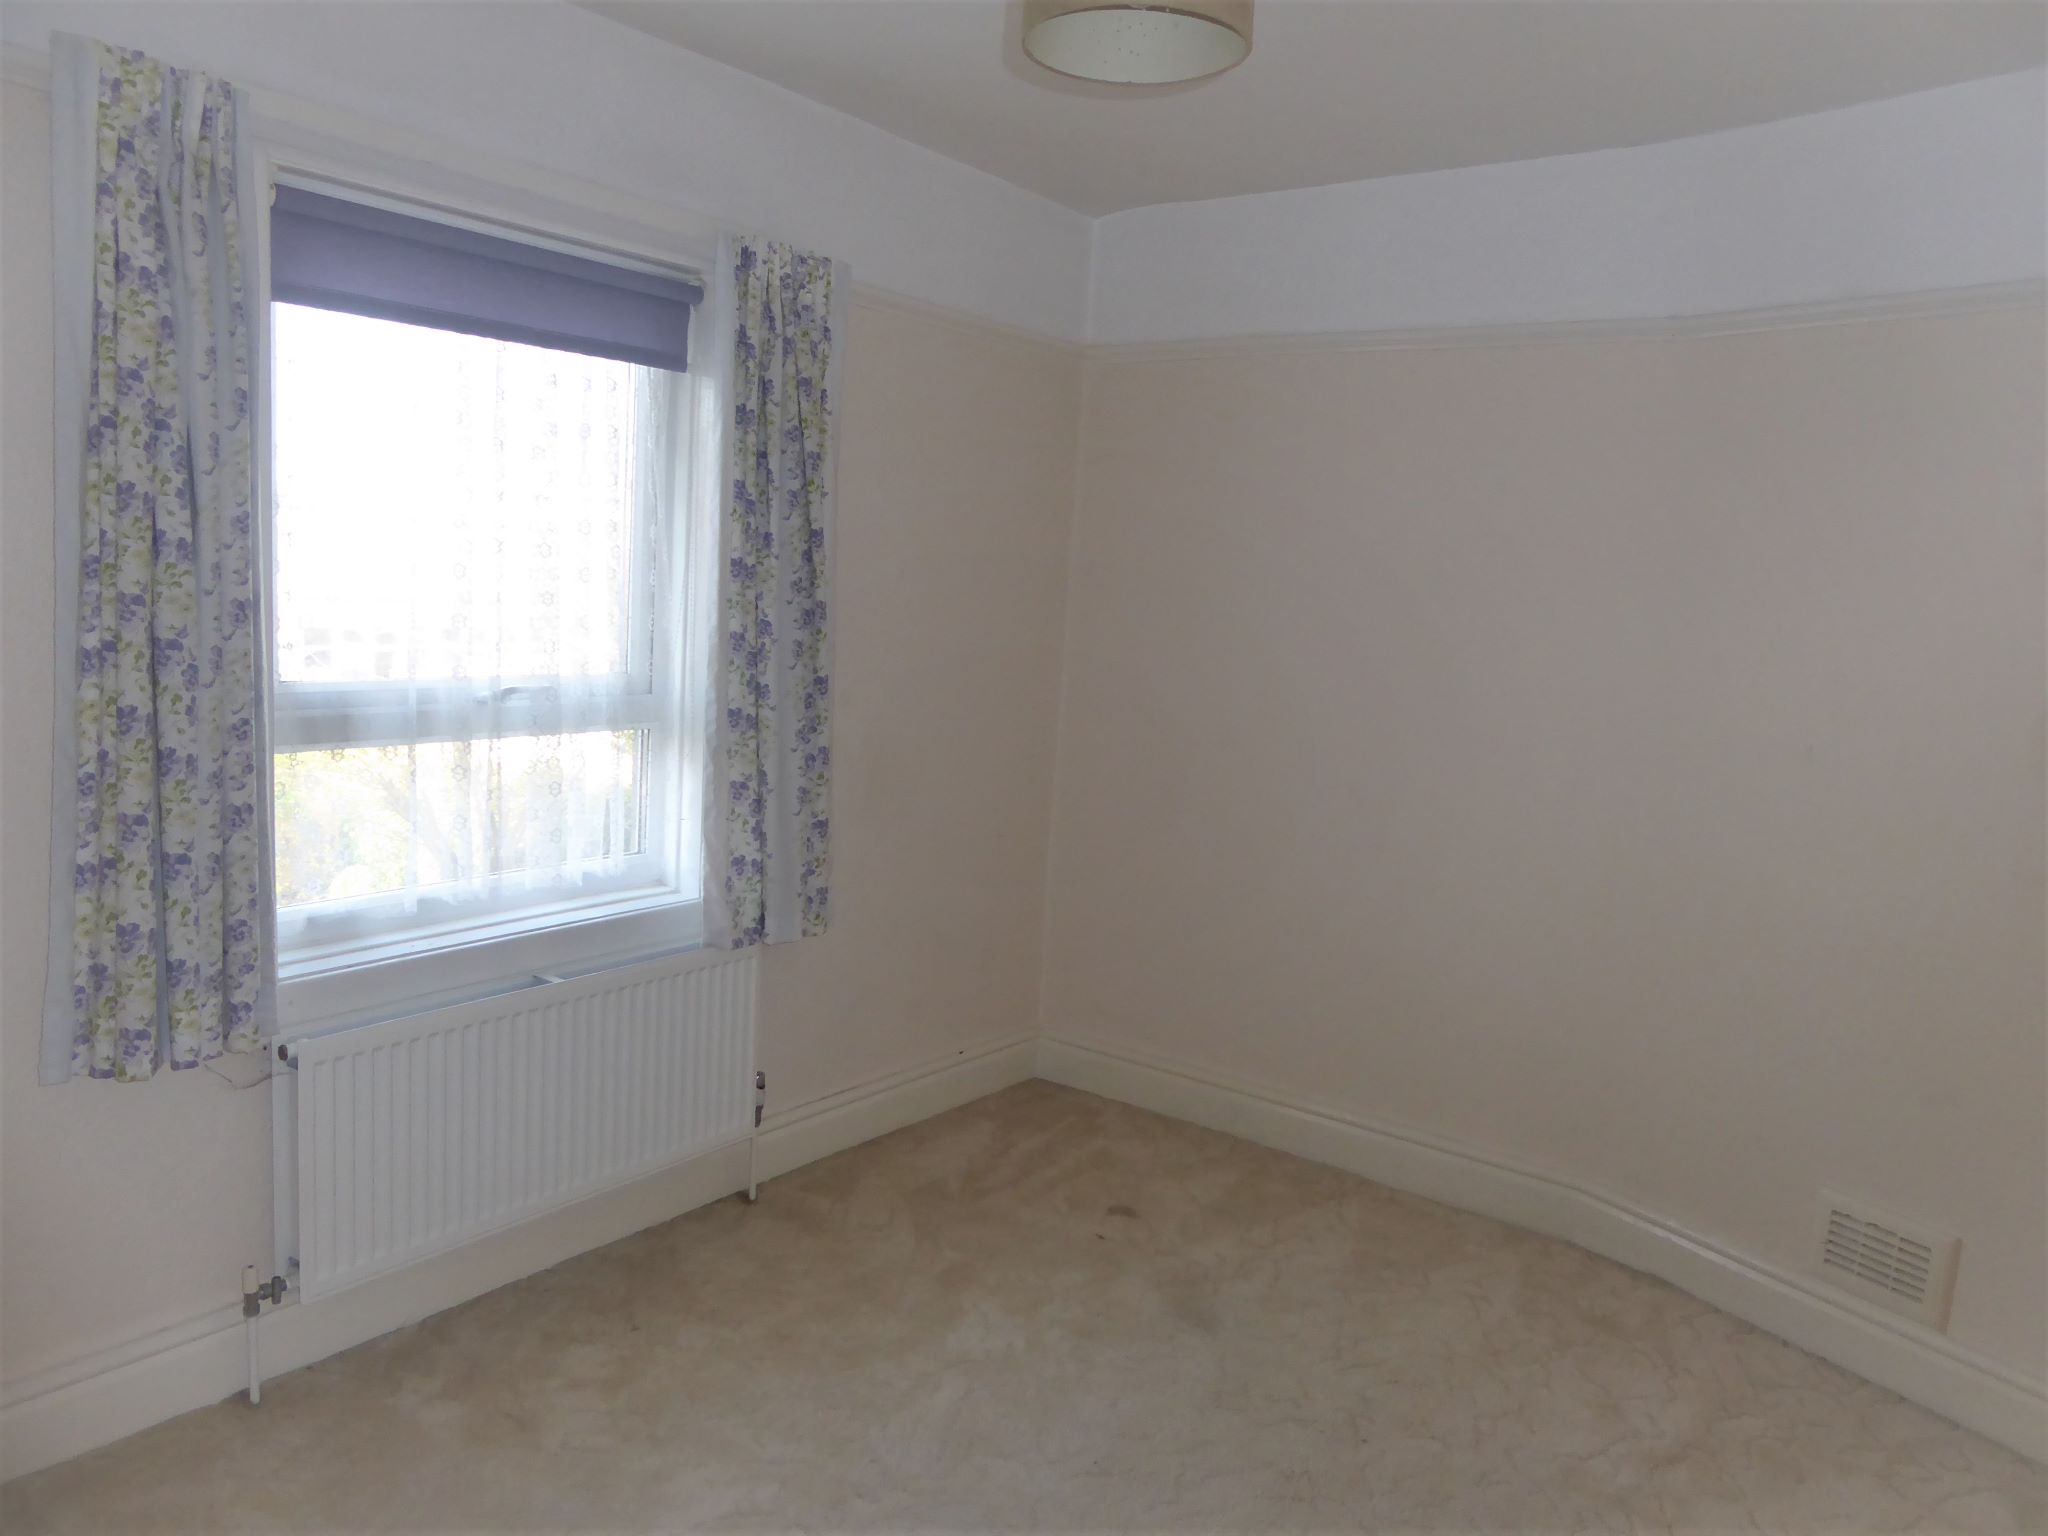 3 bedroom end terraced house SSTC in Abergele - Photograph 7